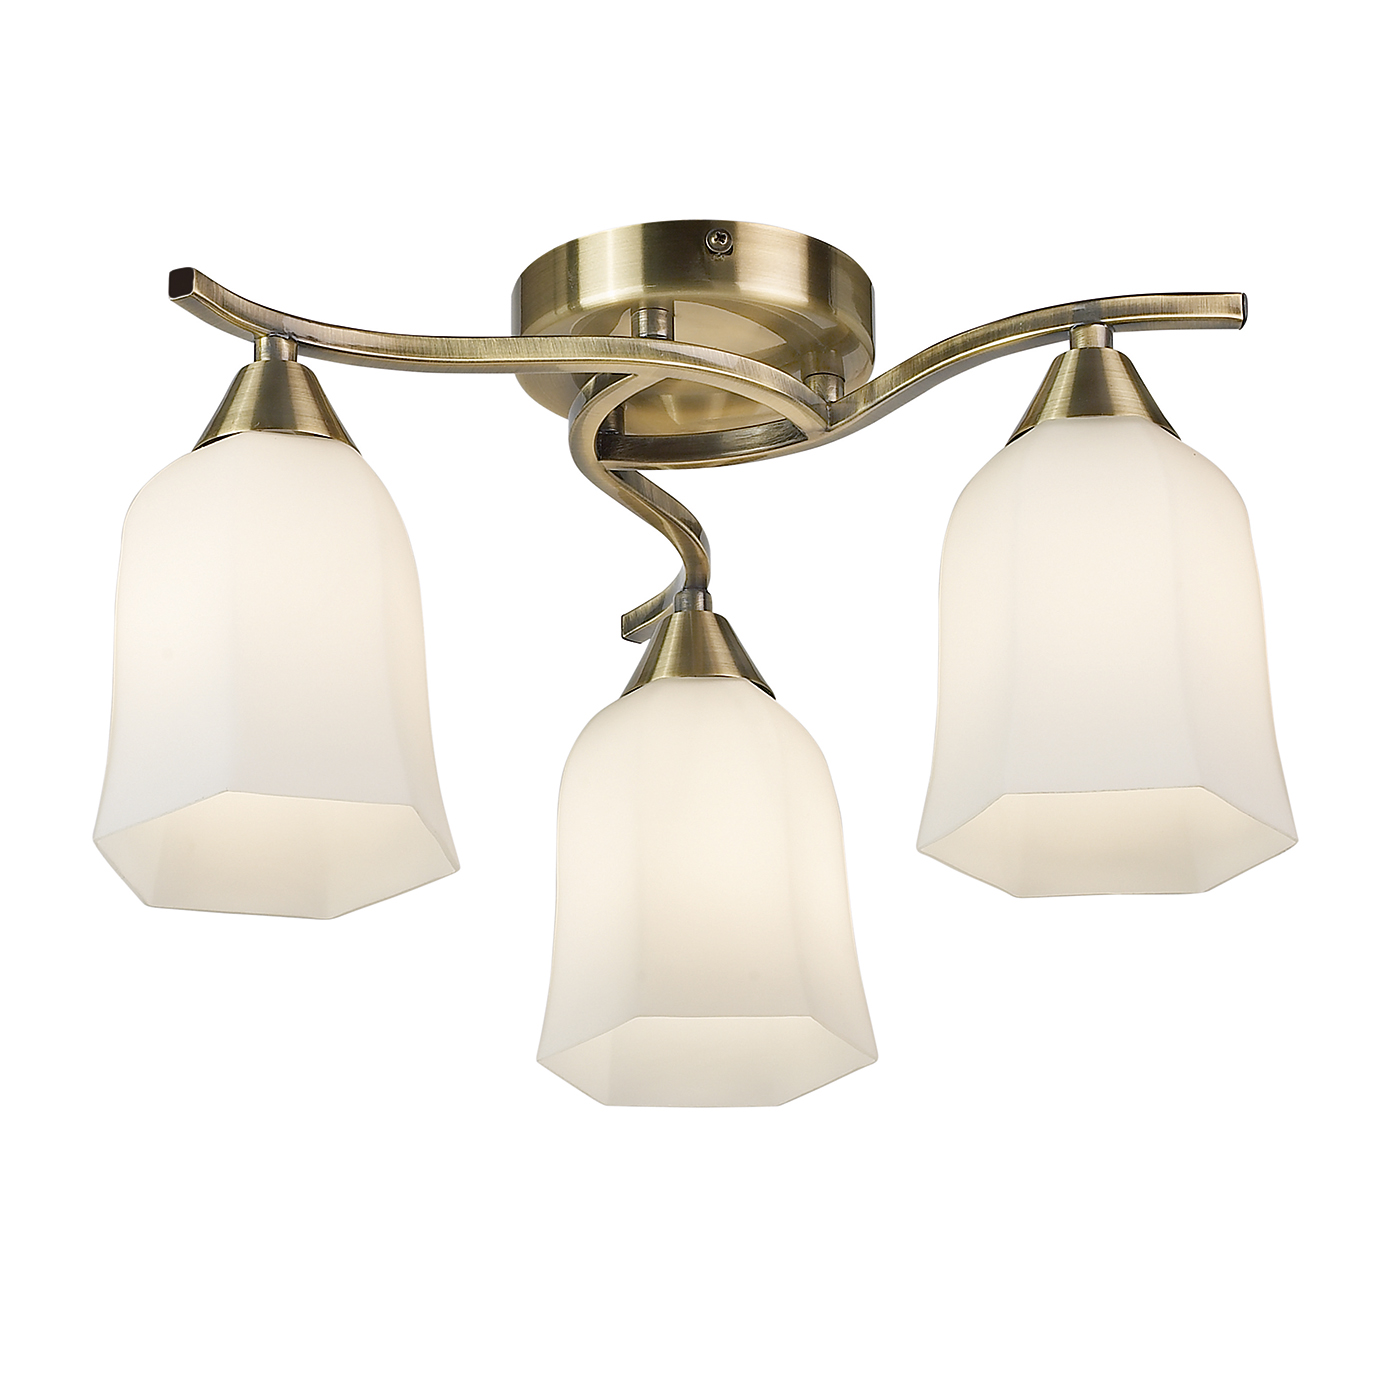 Endon Alonso ceiling light 3x 40W Antique brass effect plate & matt opal glass Thumbnail 1